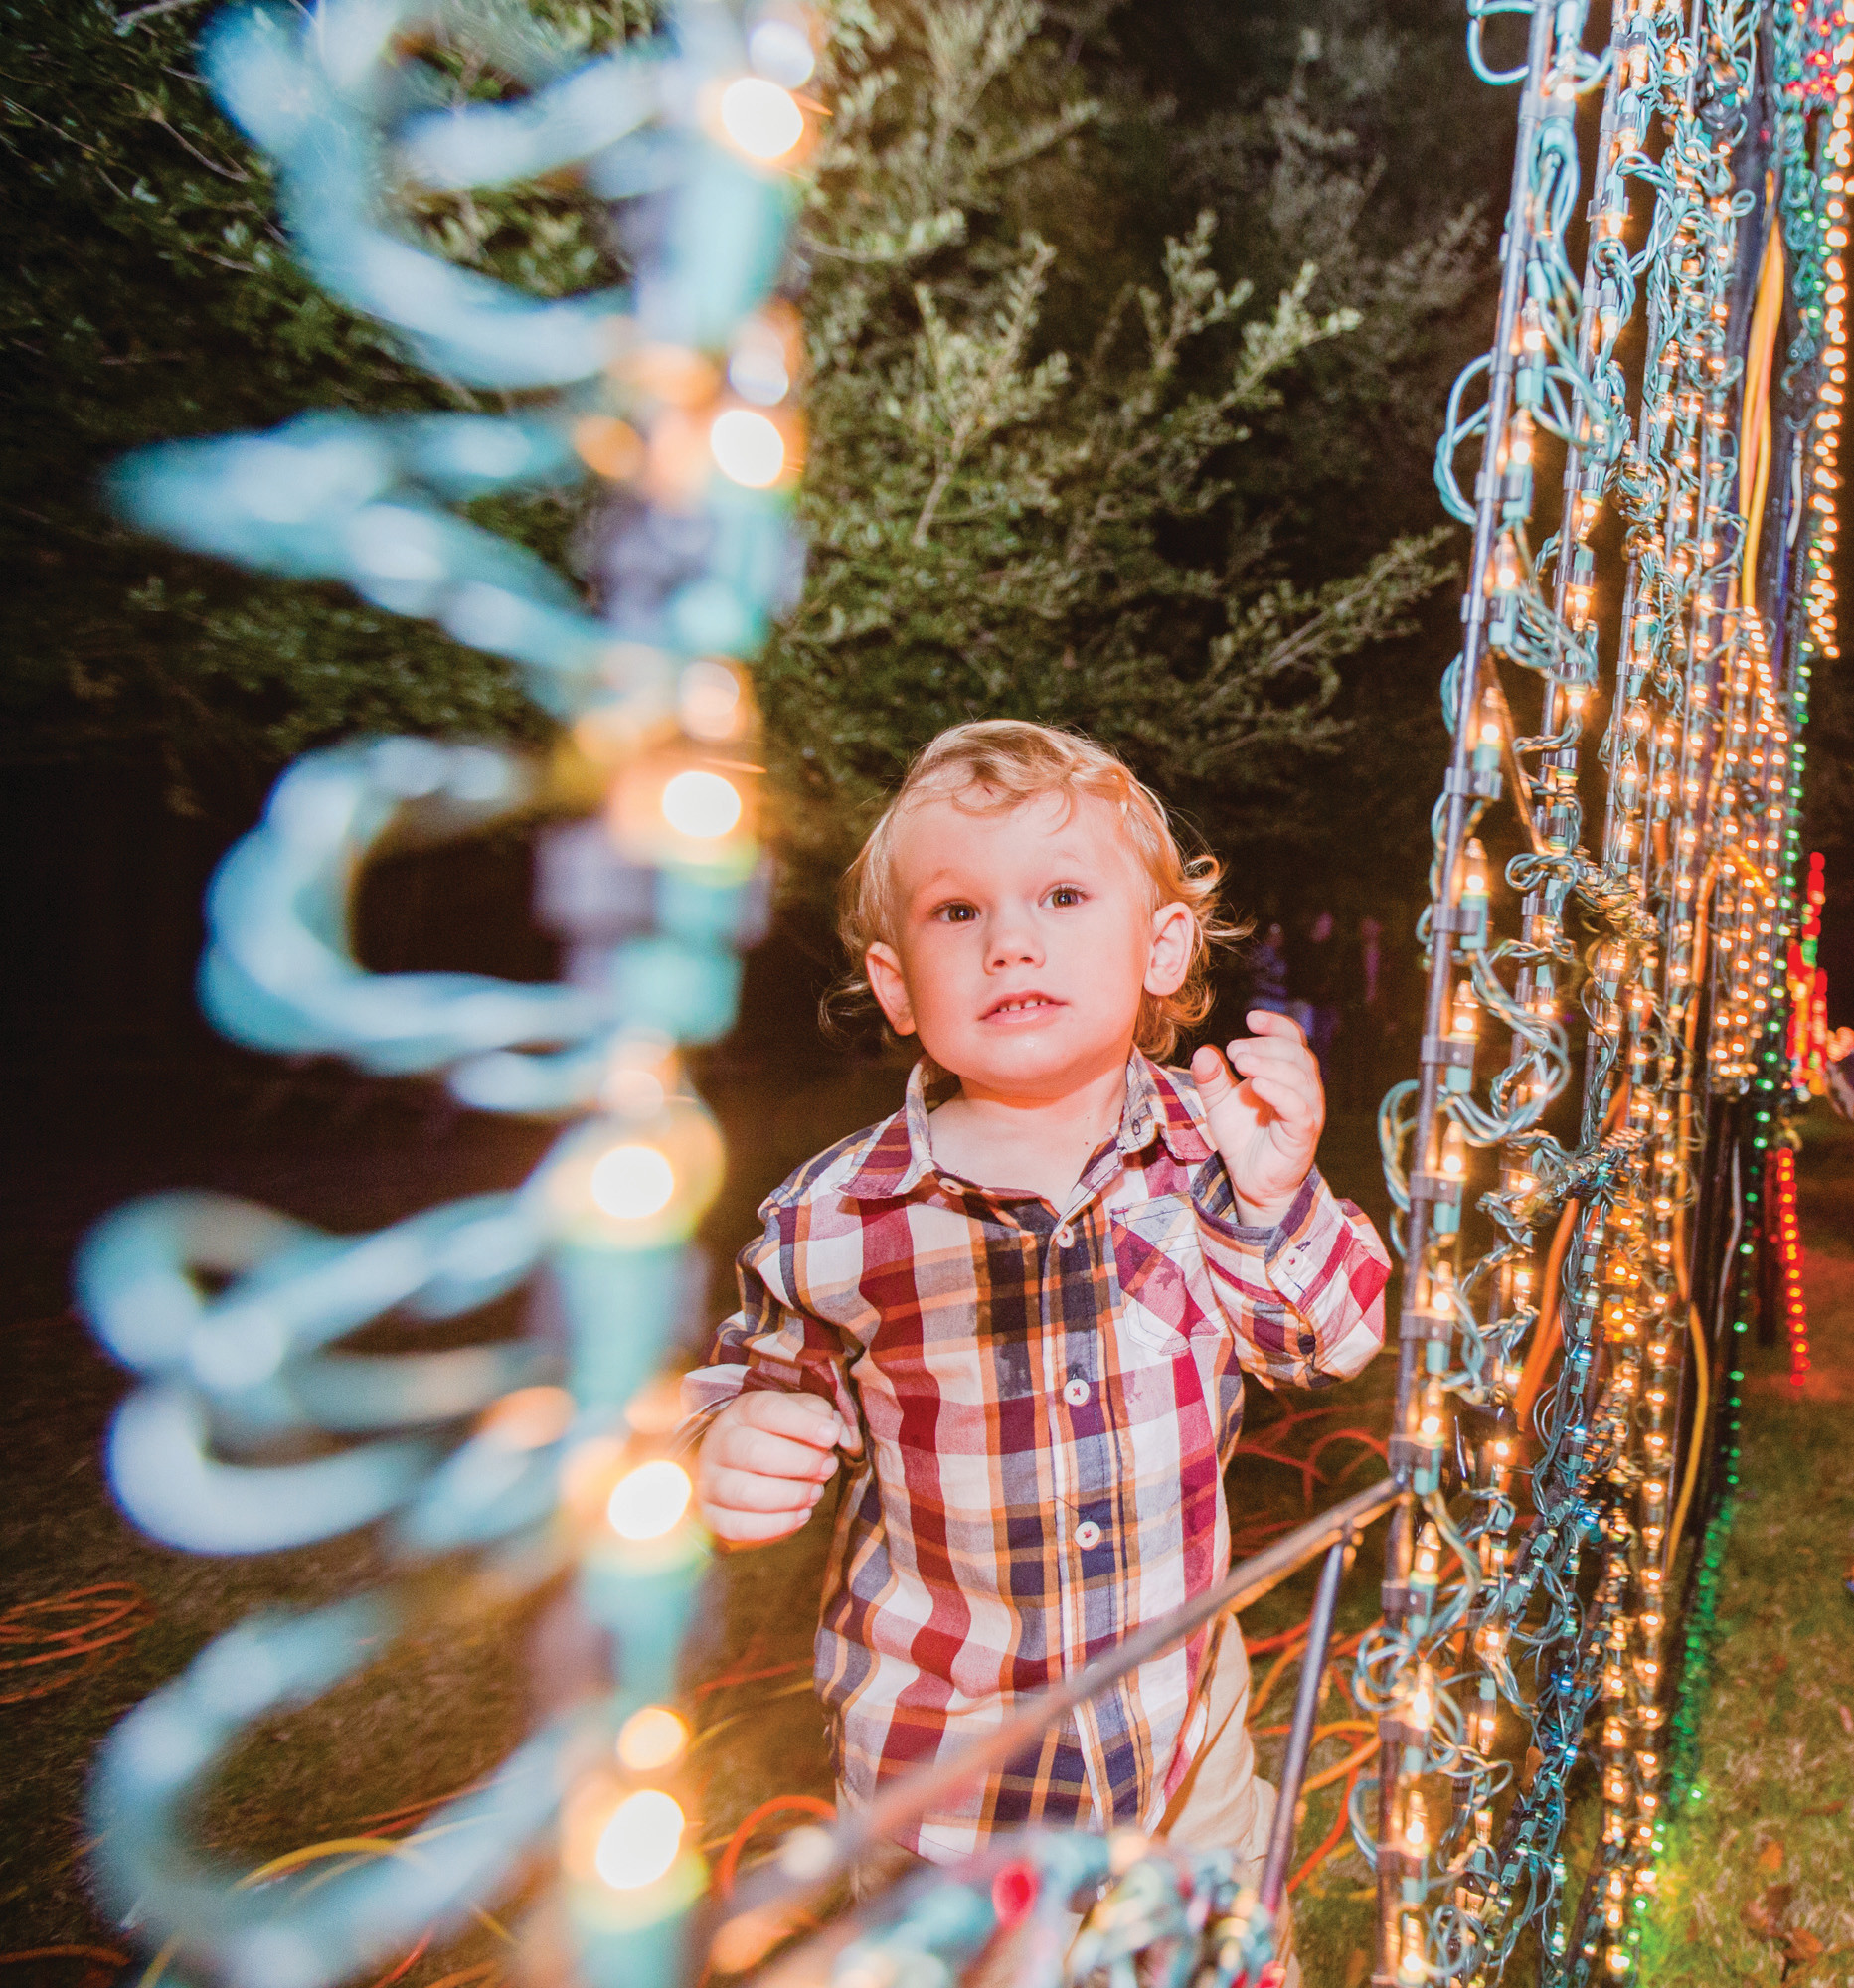 Davis Timmons checks out a house made of lights at the 30th annual Fantasy of Lights on Friday.